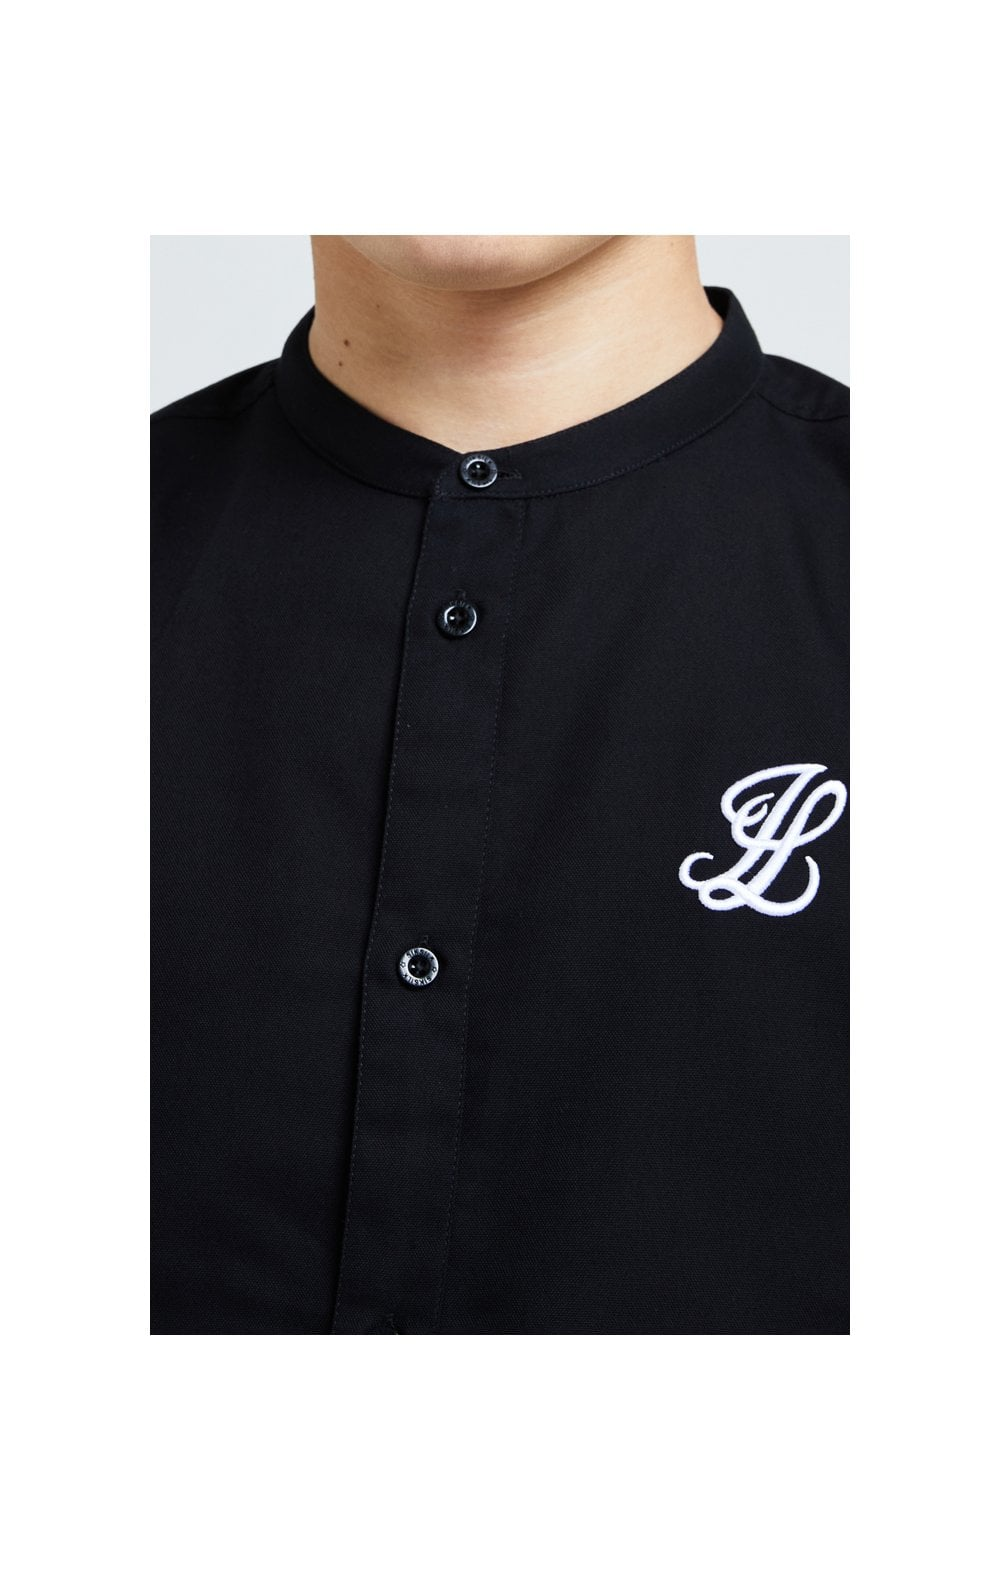 Illusive London Core Grandad Shirt - Black (1)